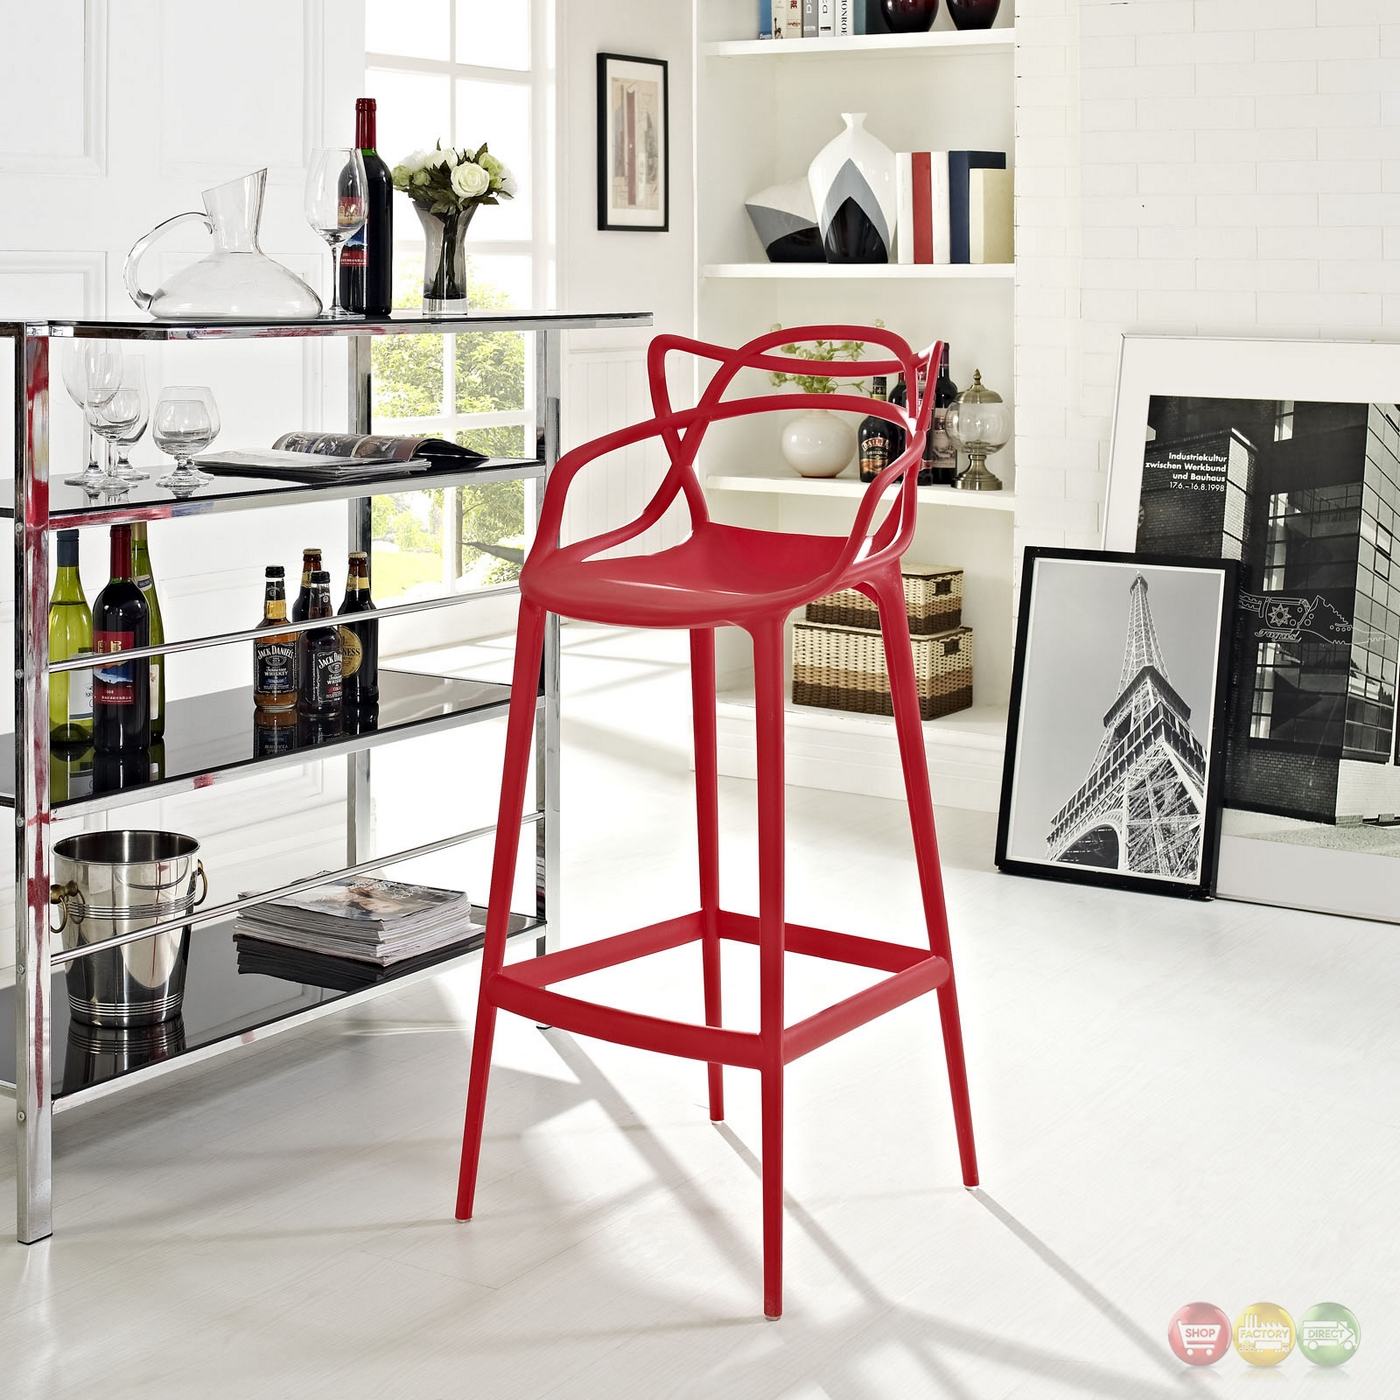 Entangled Stylish Modern Molded Plastic Bar Stool Red